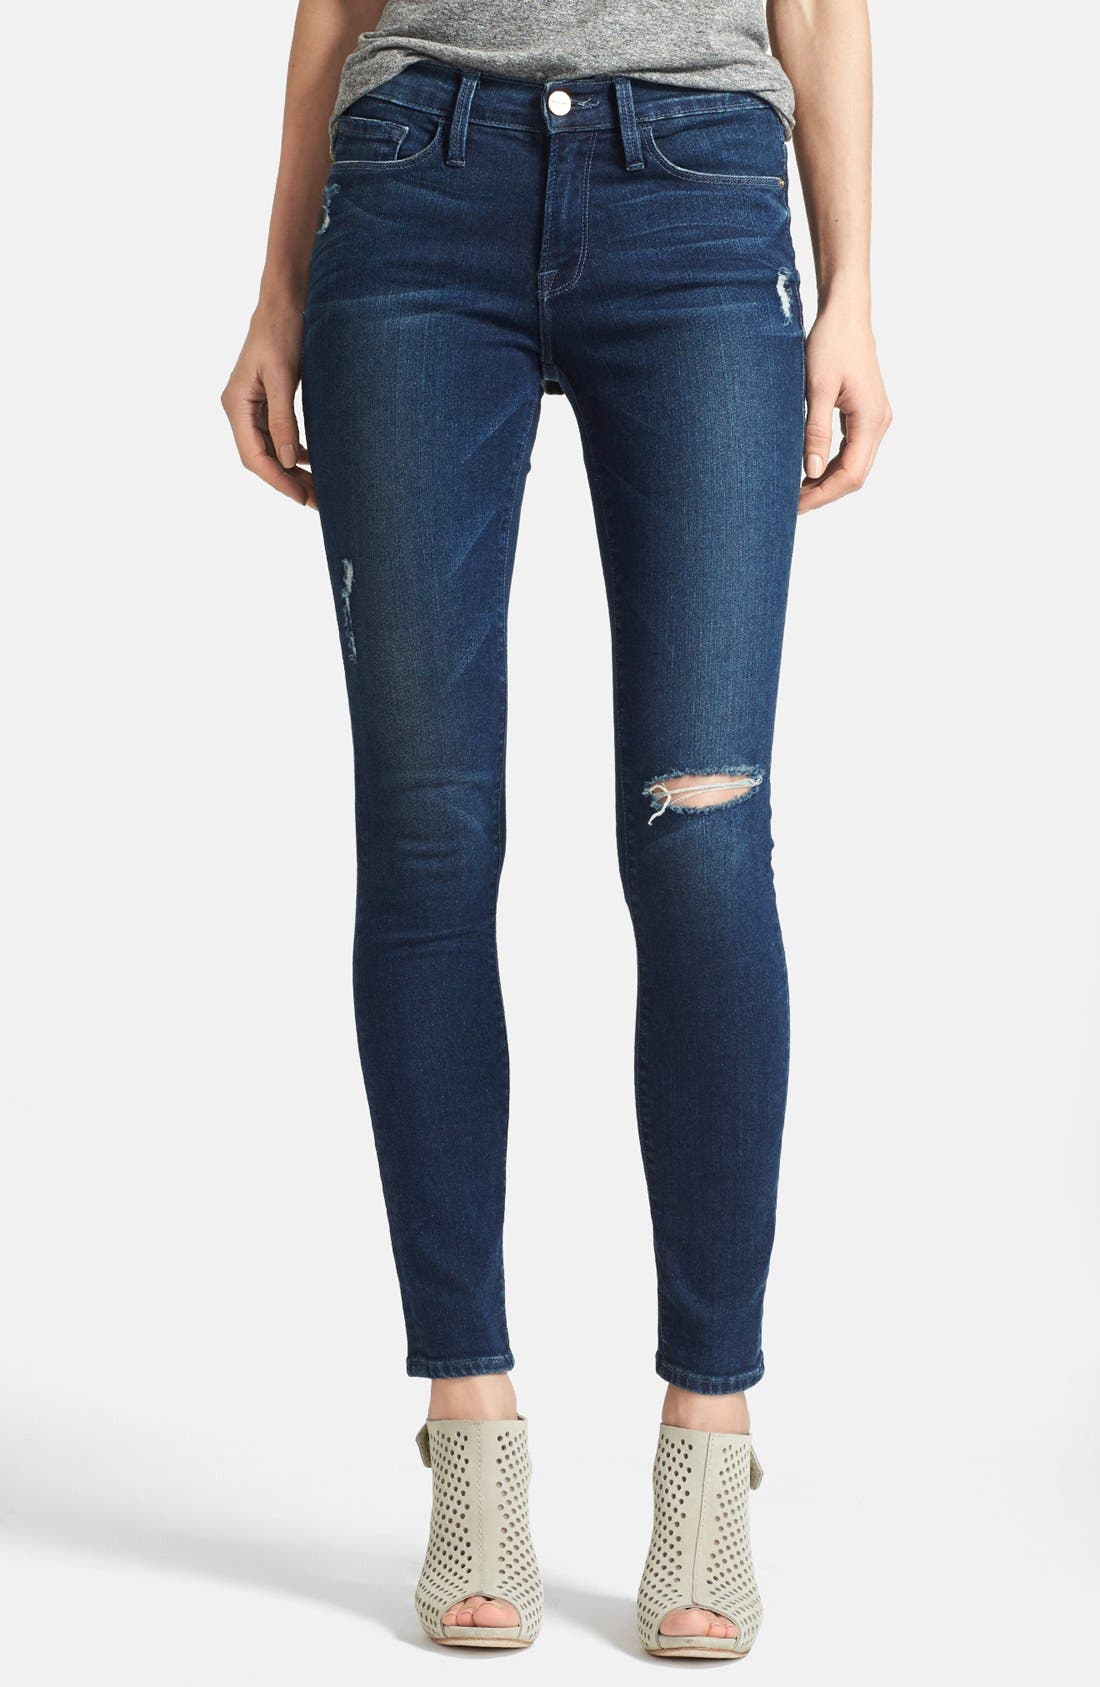 Main Image - Frame Denim 'Le Skinny de Jeanne' Jeans (Runyon Canyon)